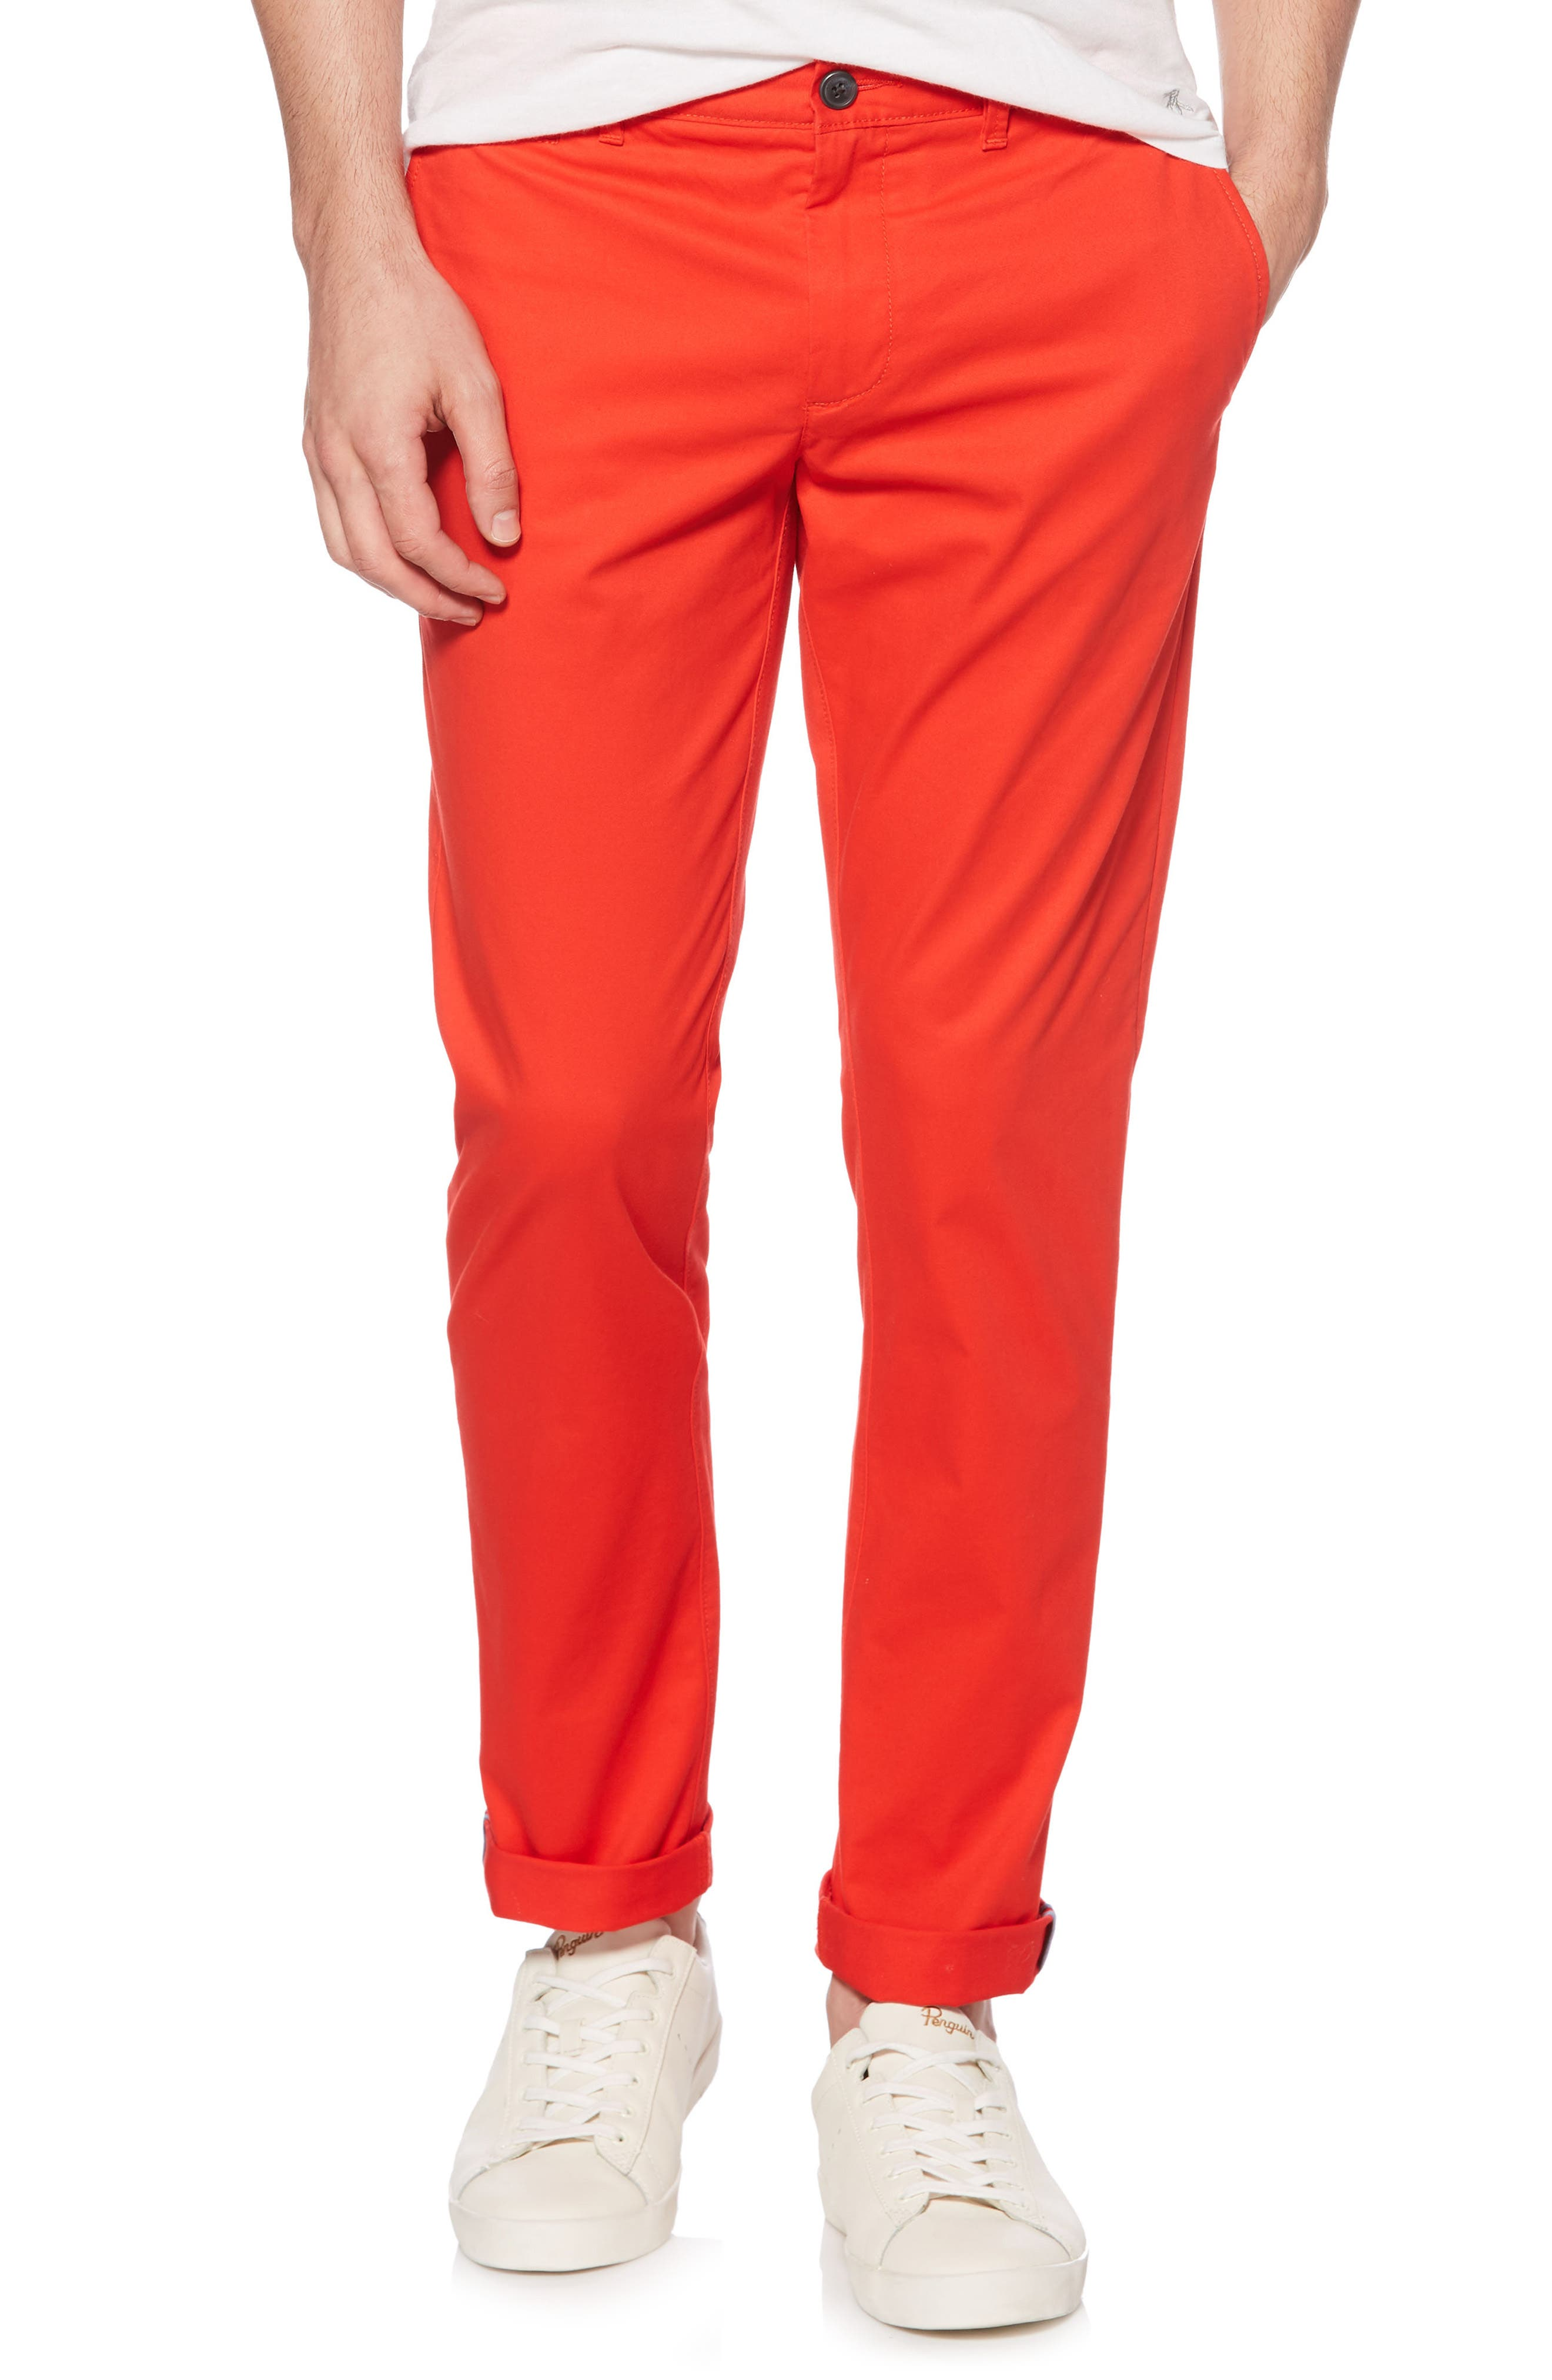 P55 Slim Stretch Chinos,                         Main,                         color, Flame Scarlet